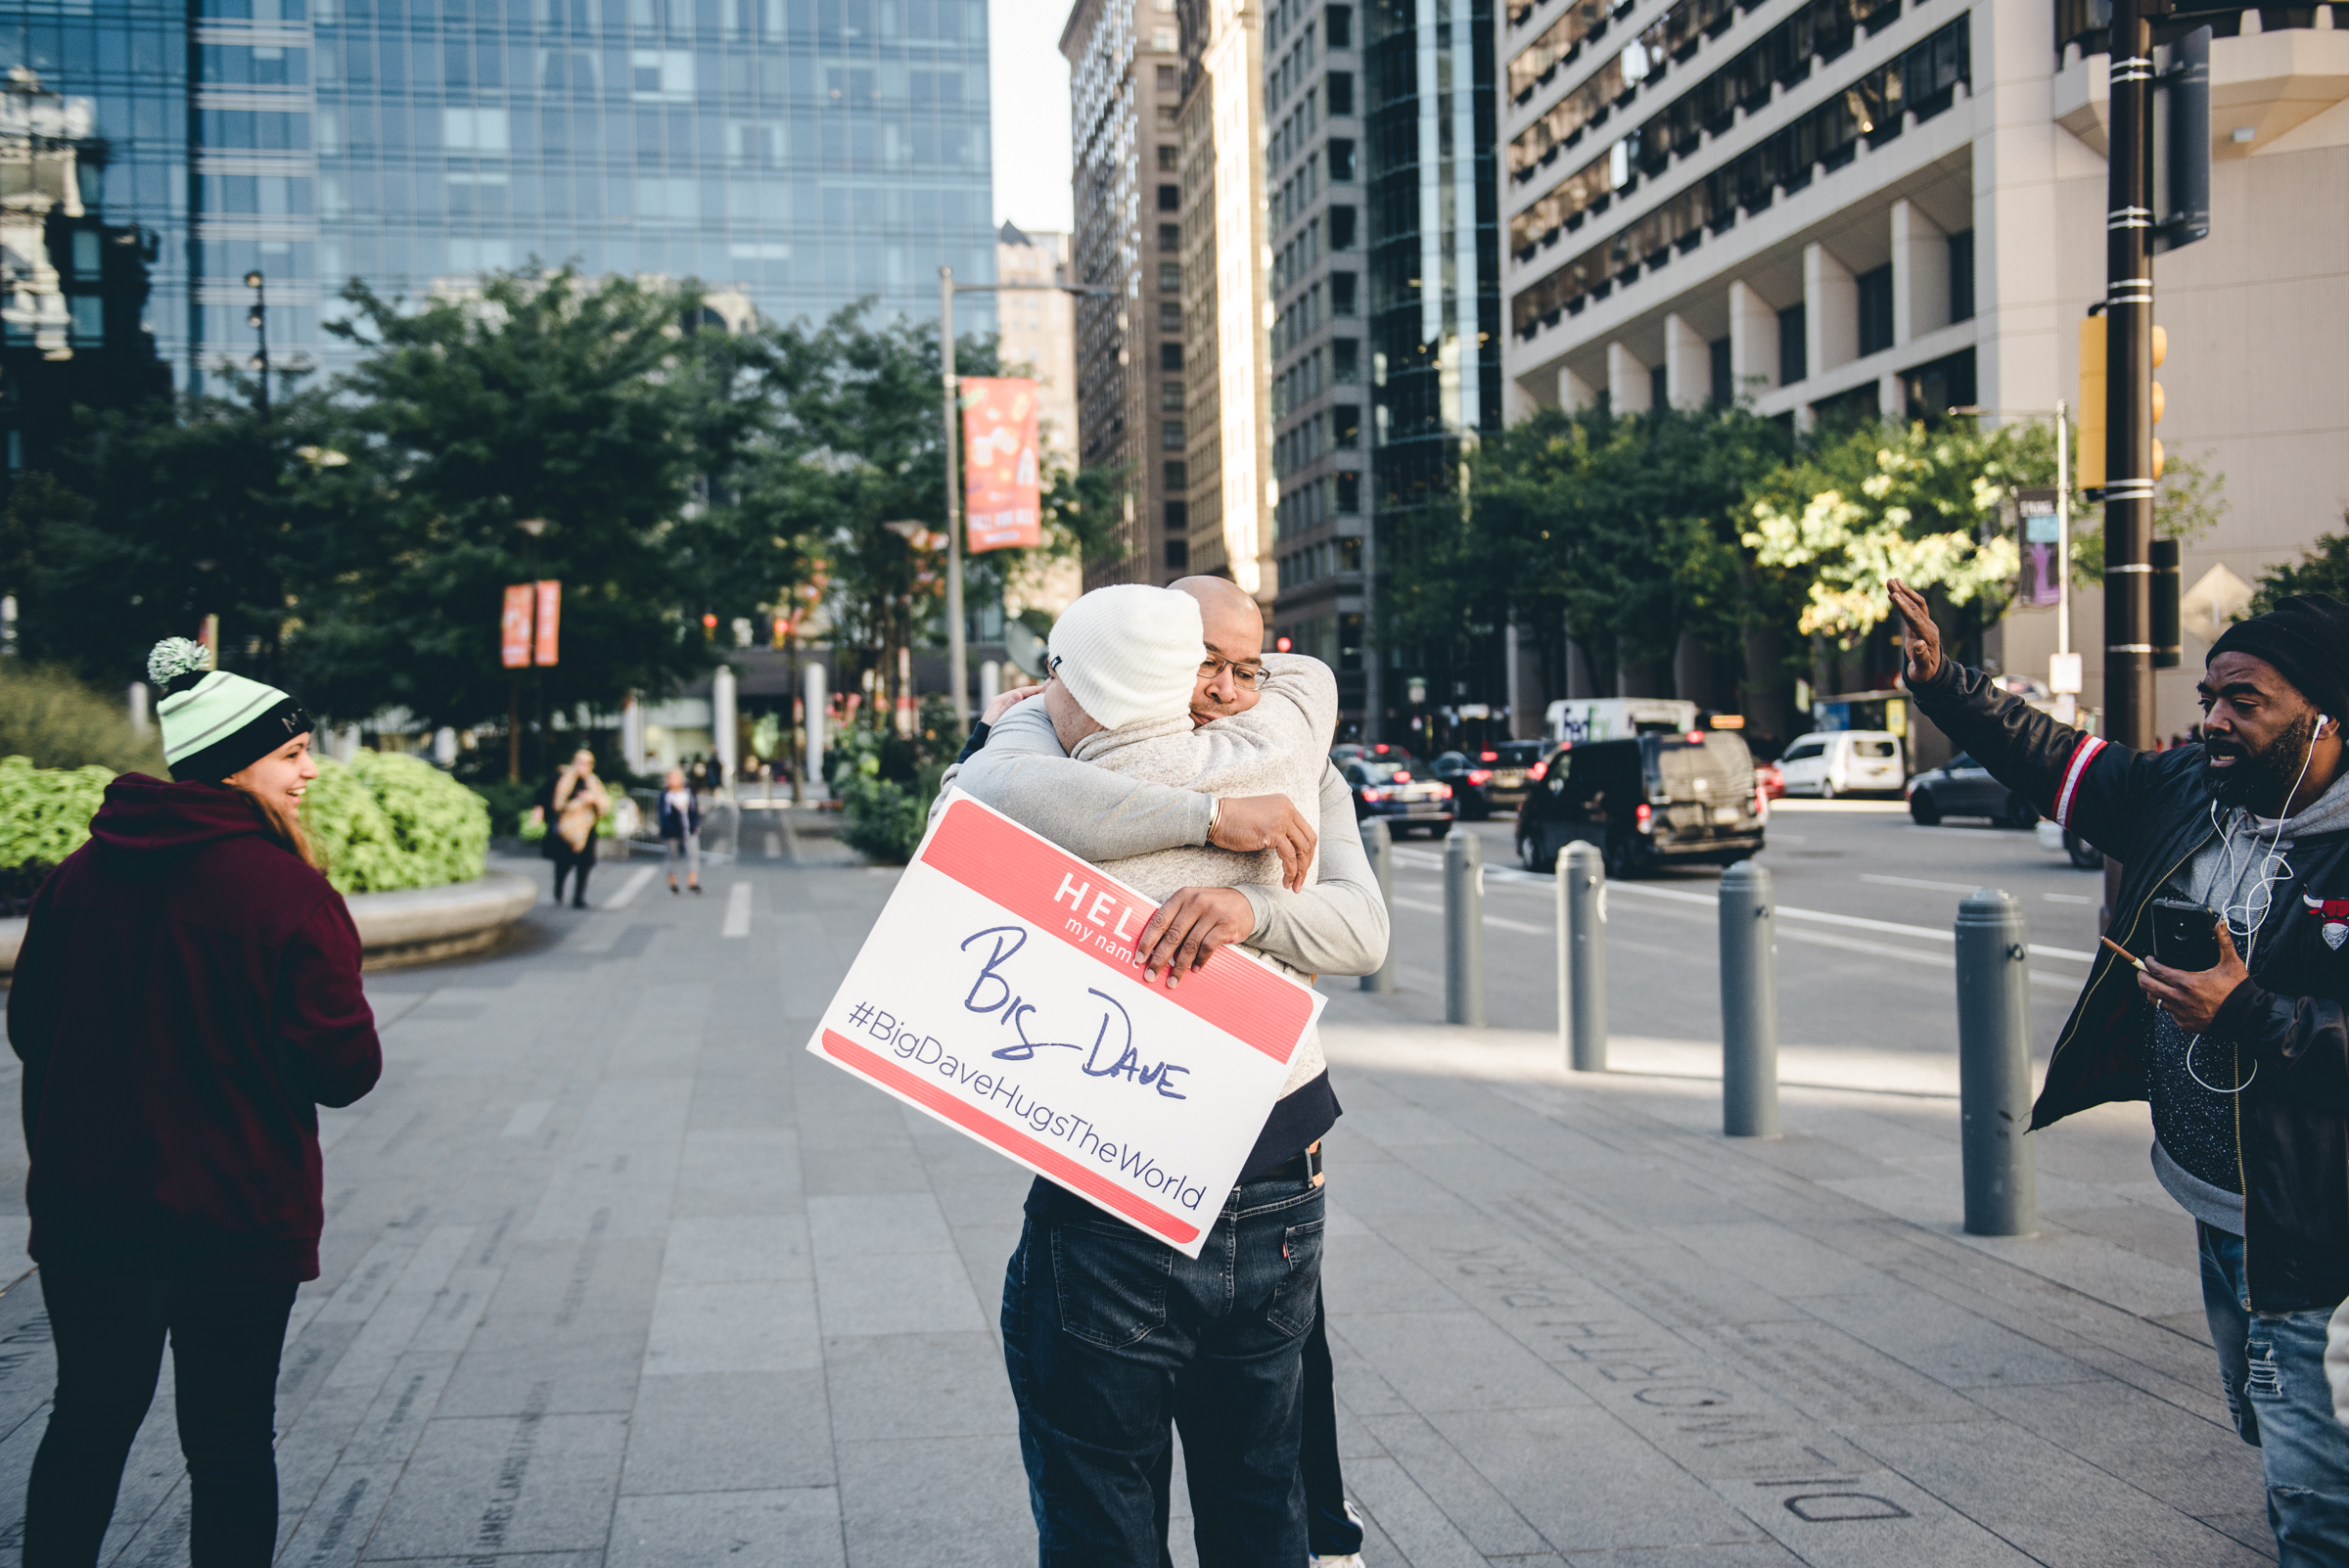 Big Dave estimates around one third of those passing by come in for a hug. Some leave in tears, as the small gesture proves its power in being able to elicit an emotional moment.